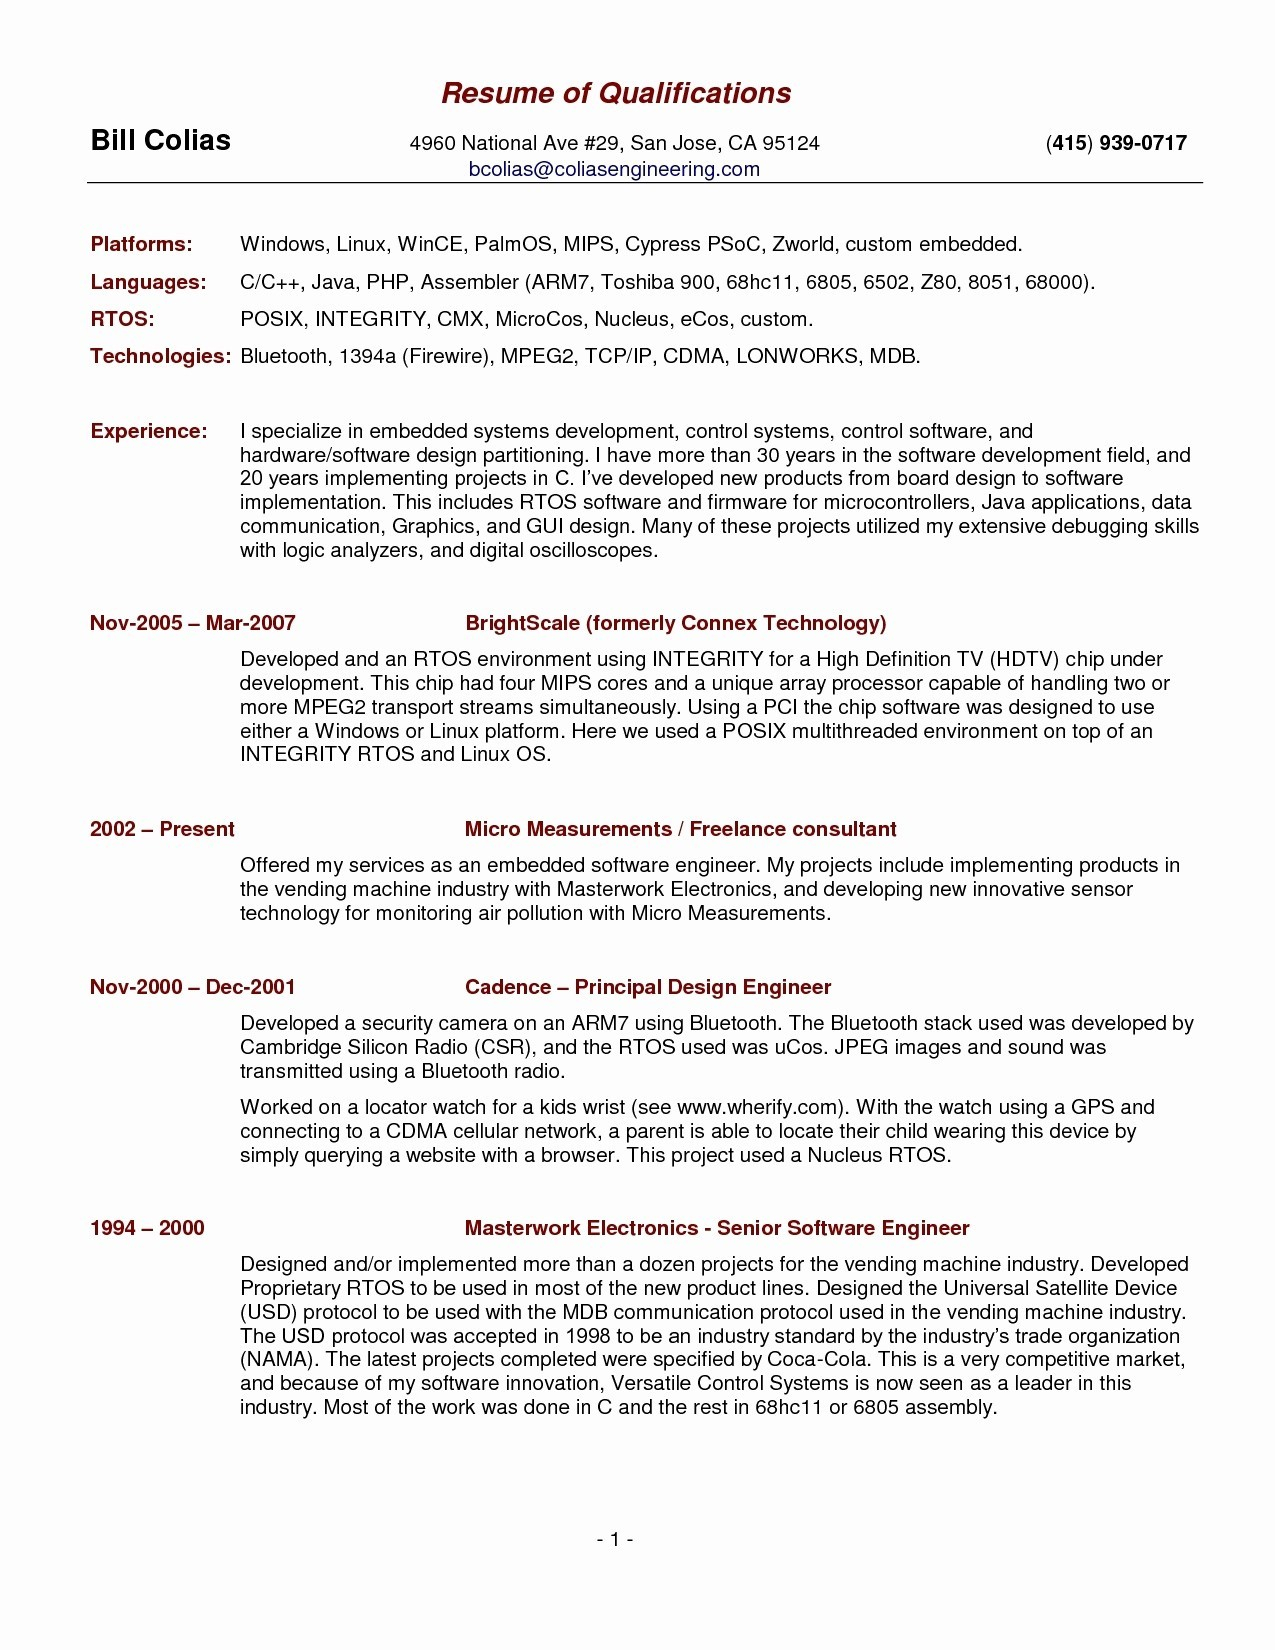 cook resume template example-Chef Resume Sample Awesome Lovely Pr Resume Template Elegant Dictionary Template 0d Archives 1-a